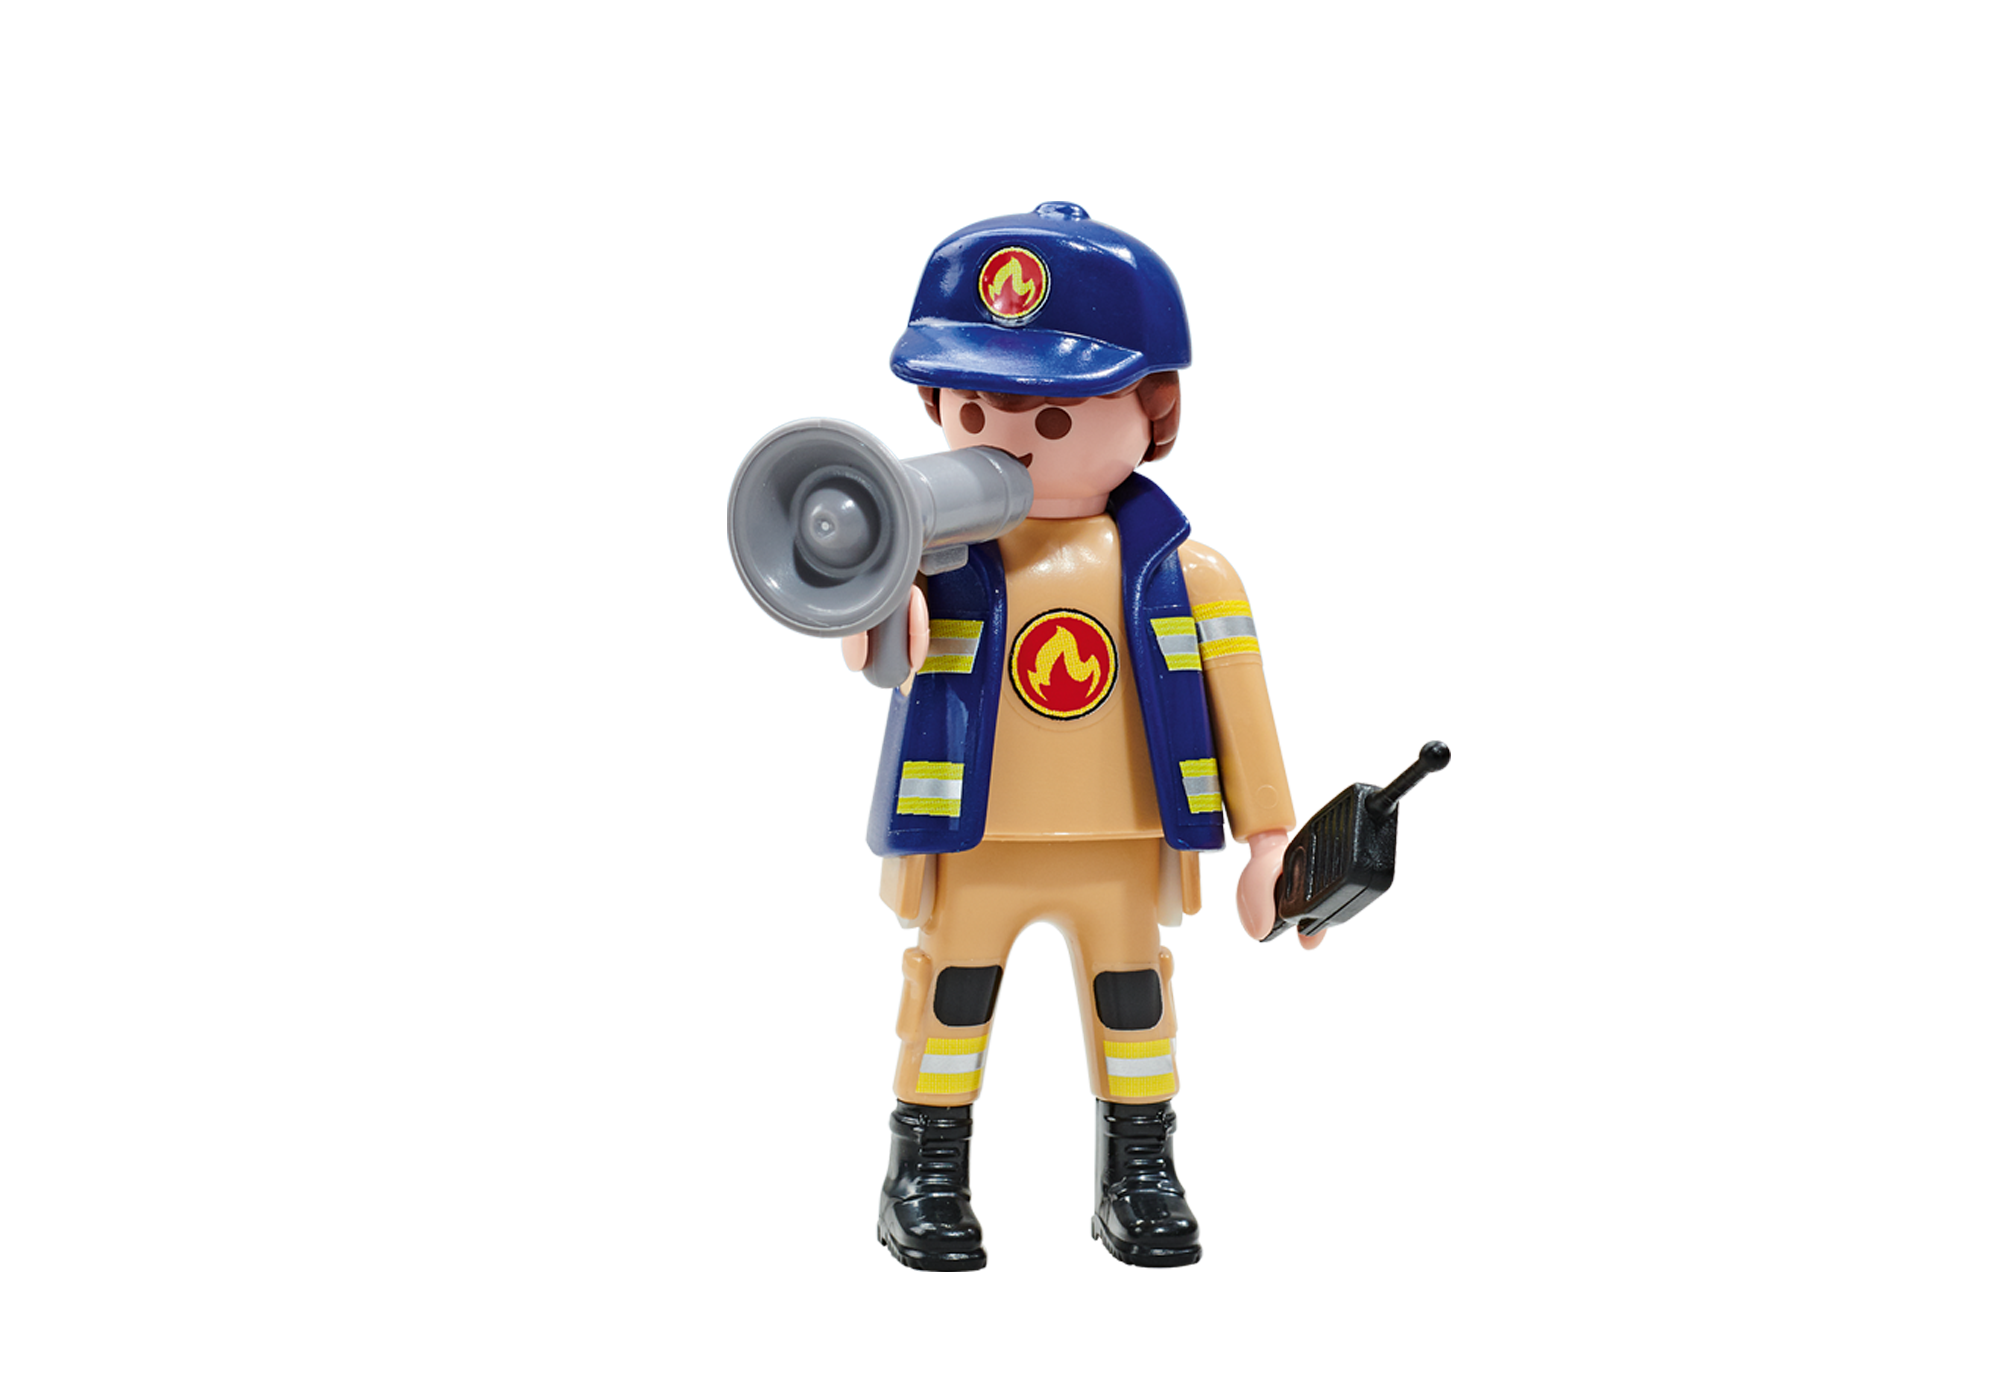 http://media.playmobil.com/i/playmobil/6583_product_detail/Chef des pompiers Equipe A